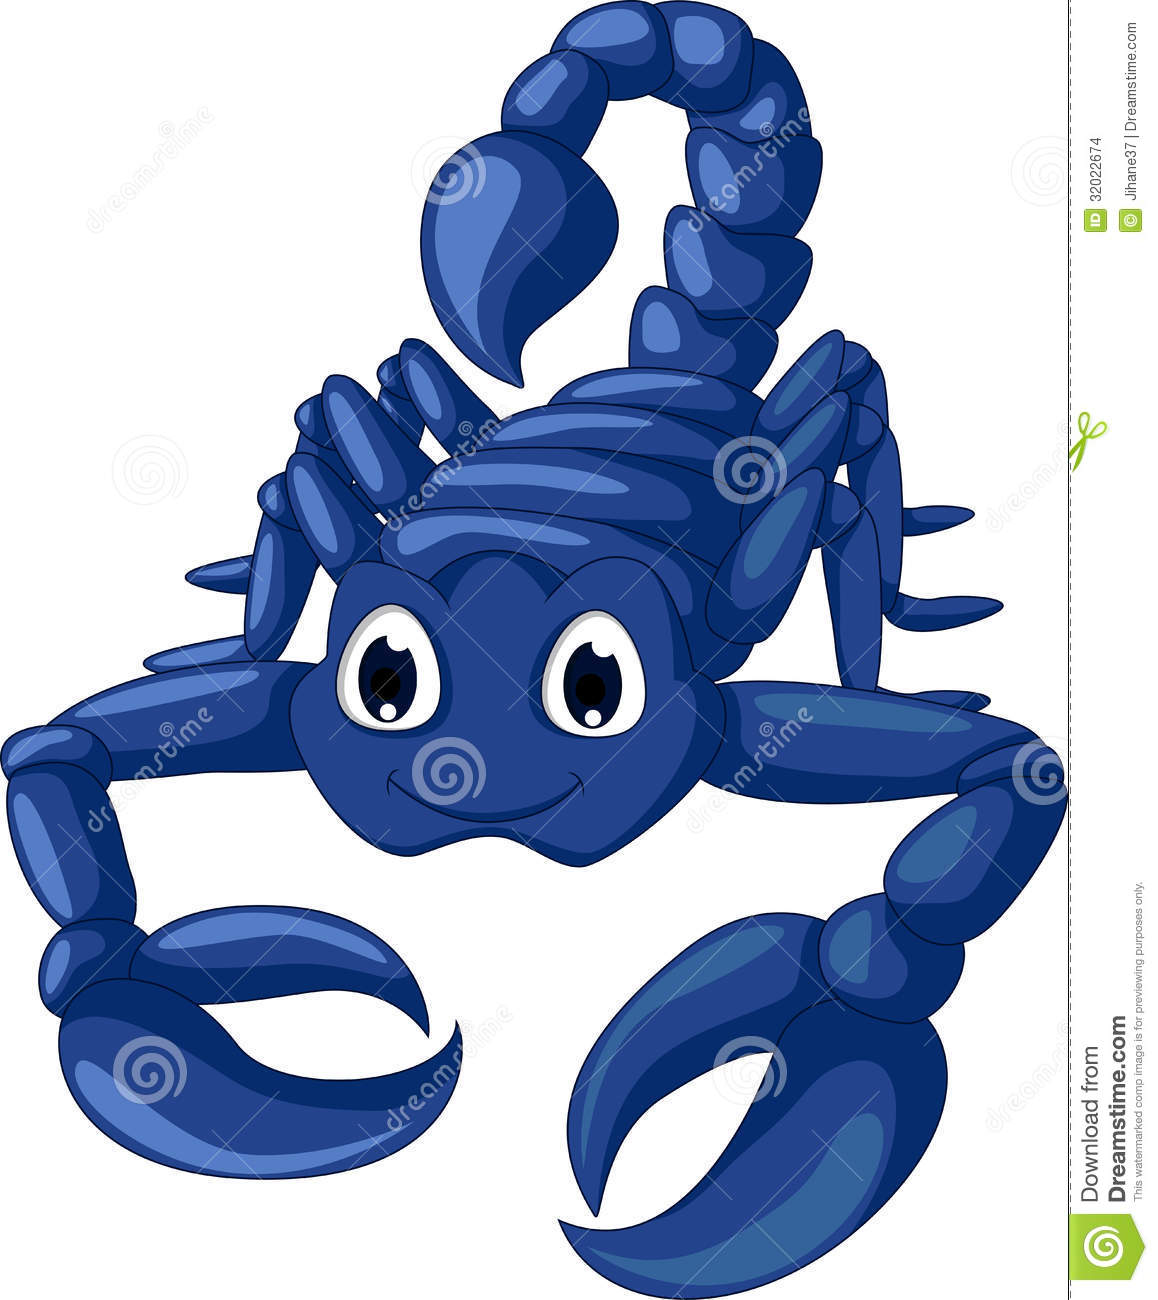 Cute Blue Scorpion Cartoon Stock Images - Image: 32022674